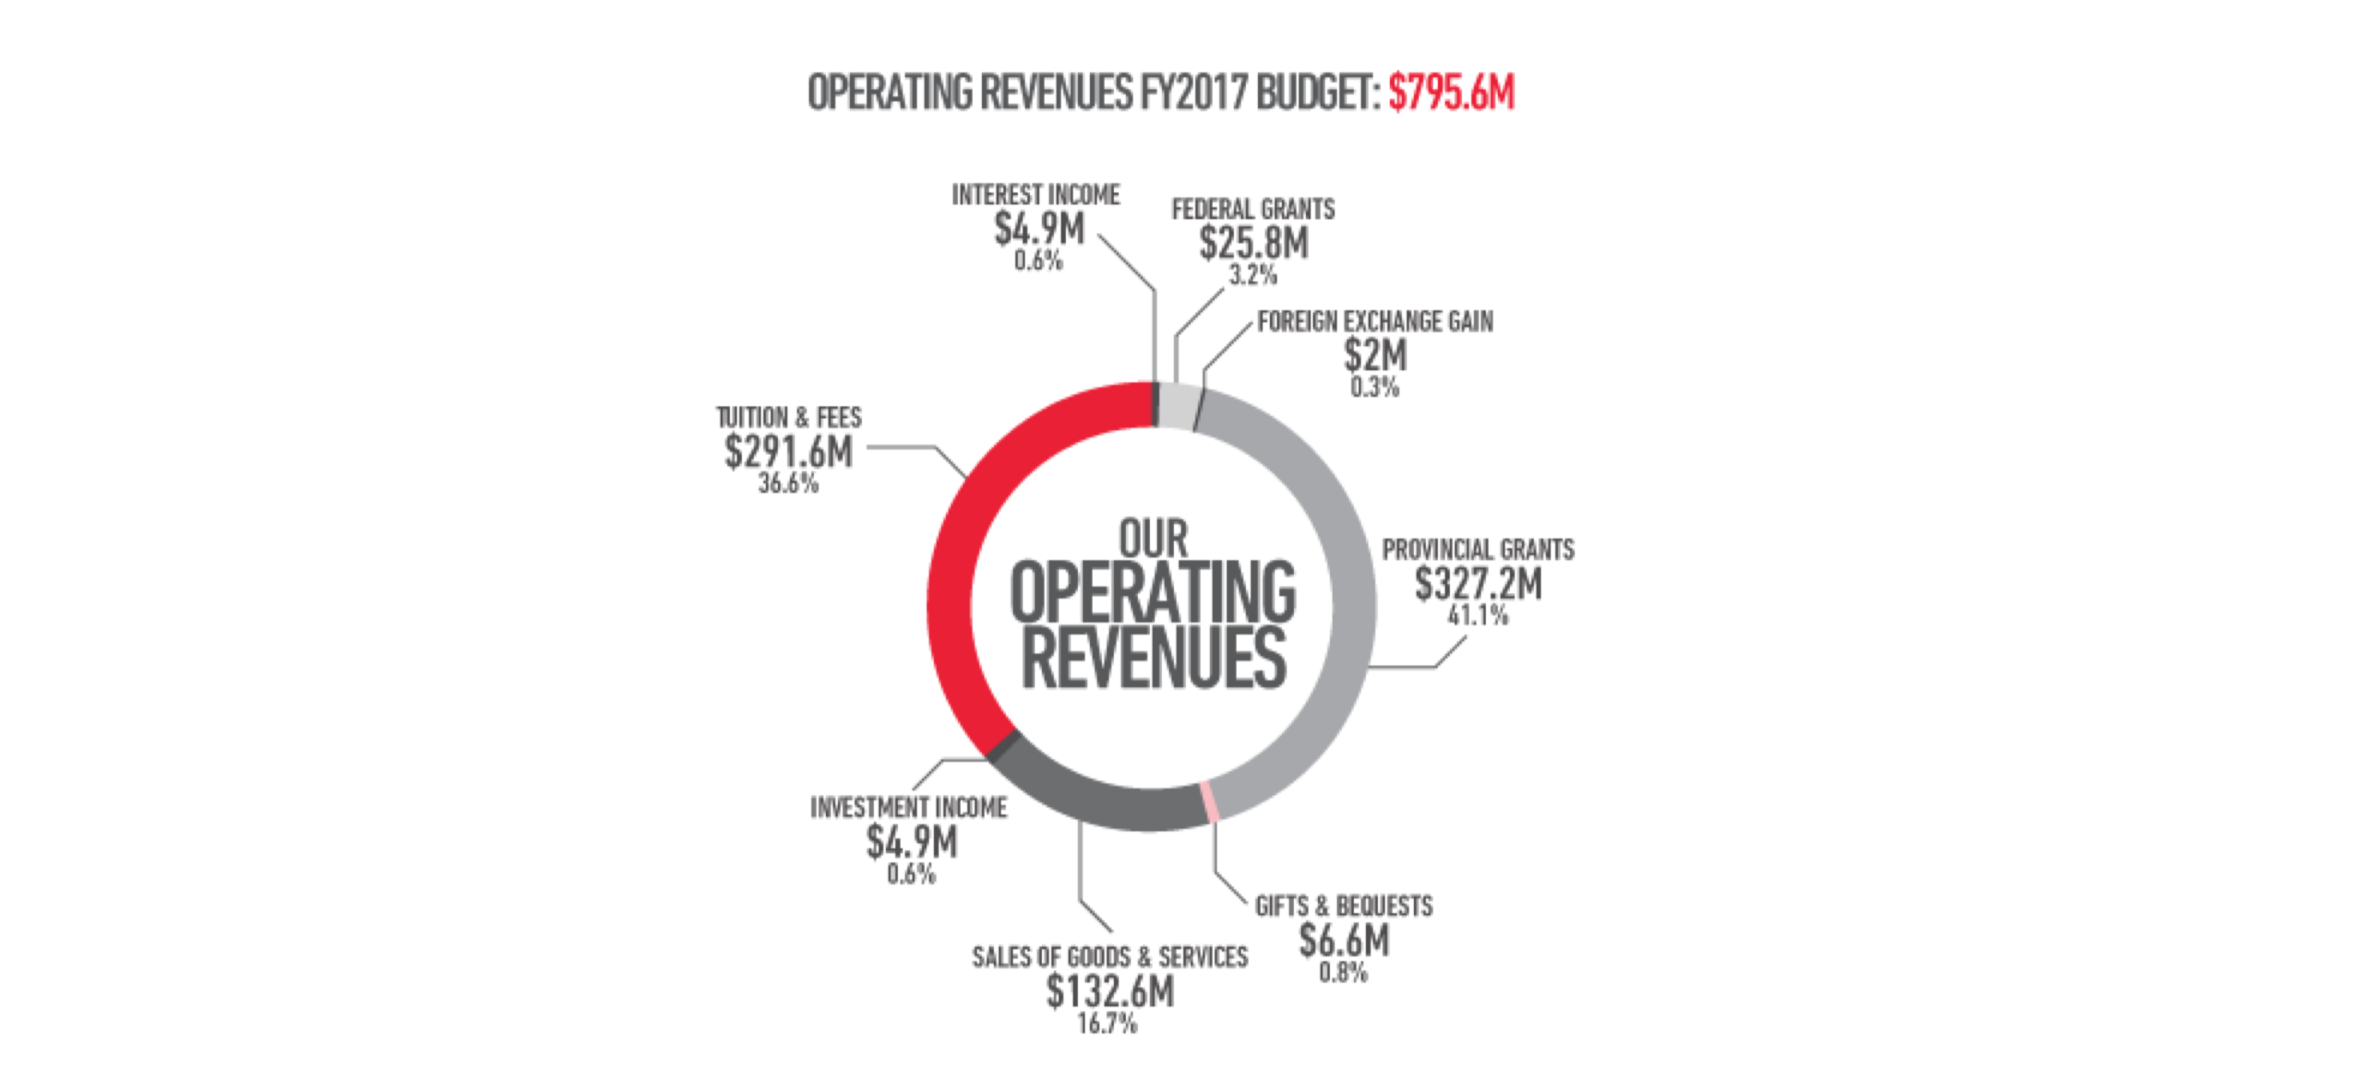 McGill University 2017 Operating Revenues.  McGill University Budget Book 2017, p. 7